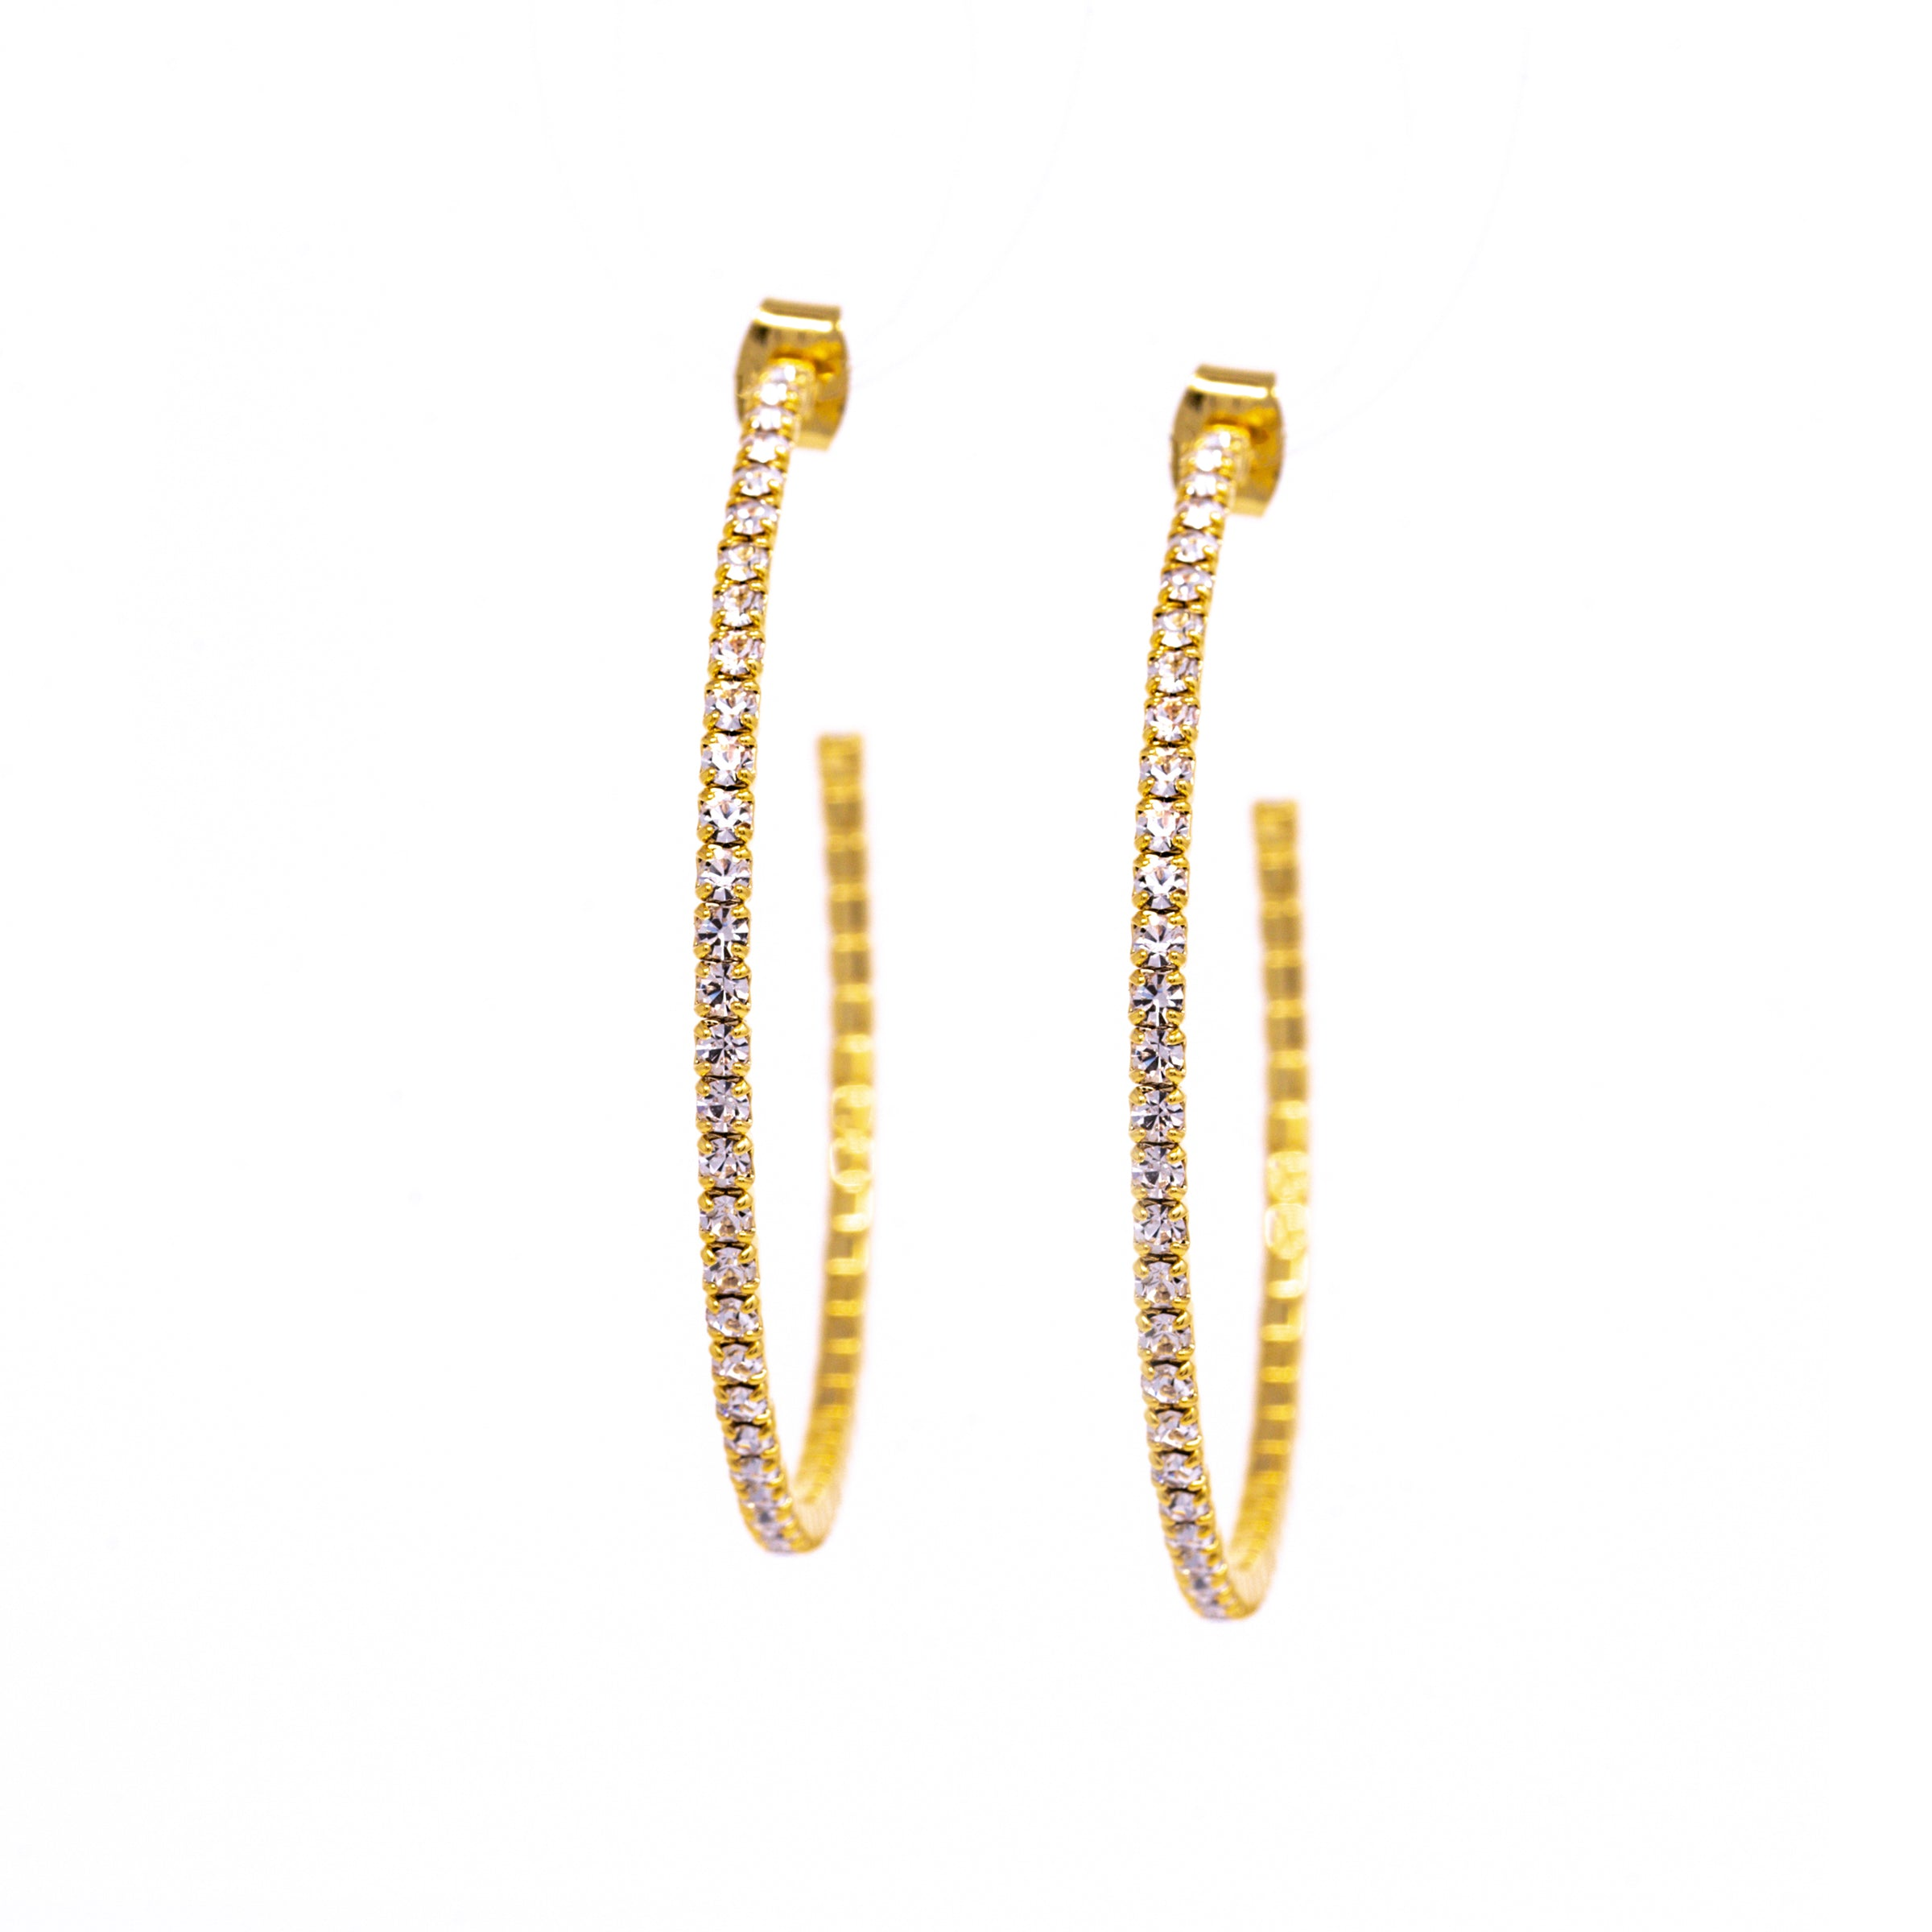 fdb915c56 Earrings - Crystal - 1/2 Hoop Large Gold (available in silver and ...